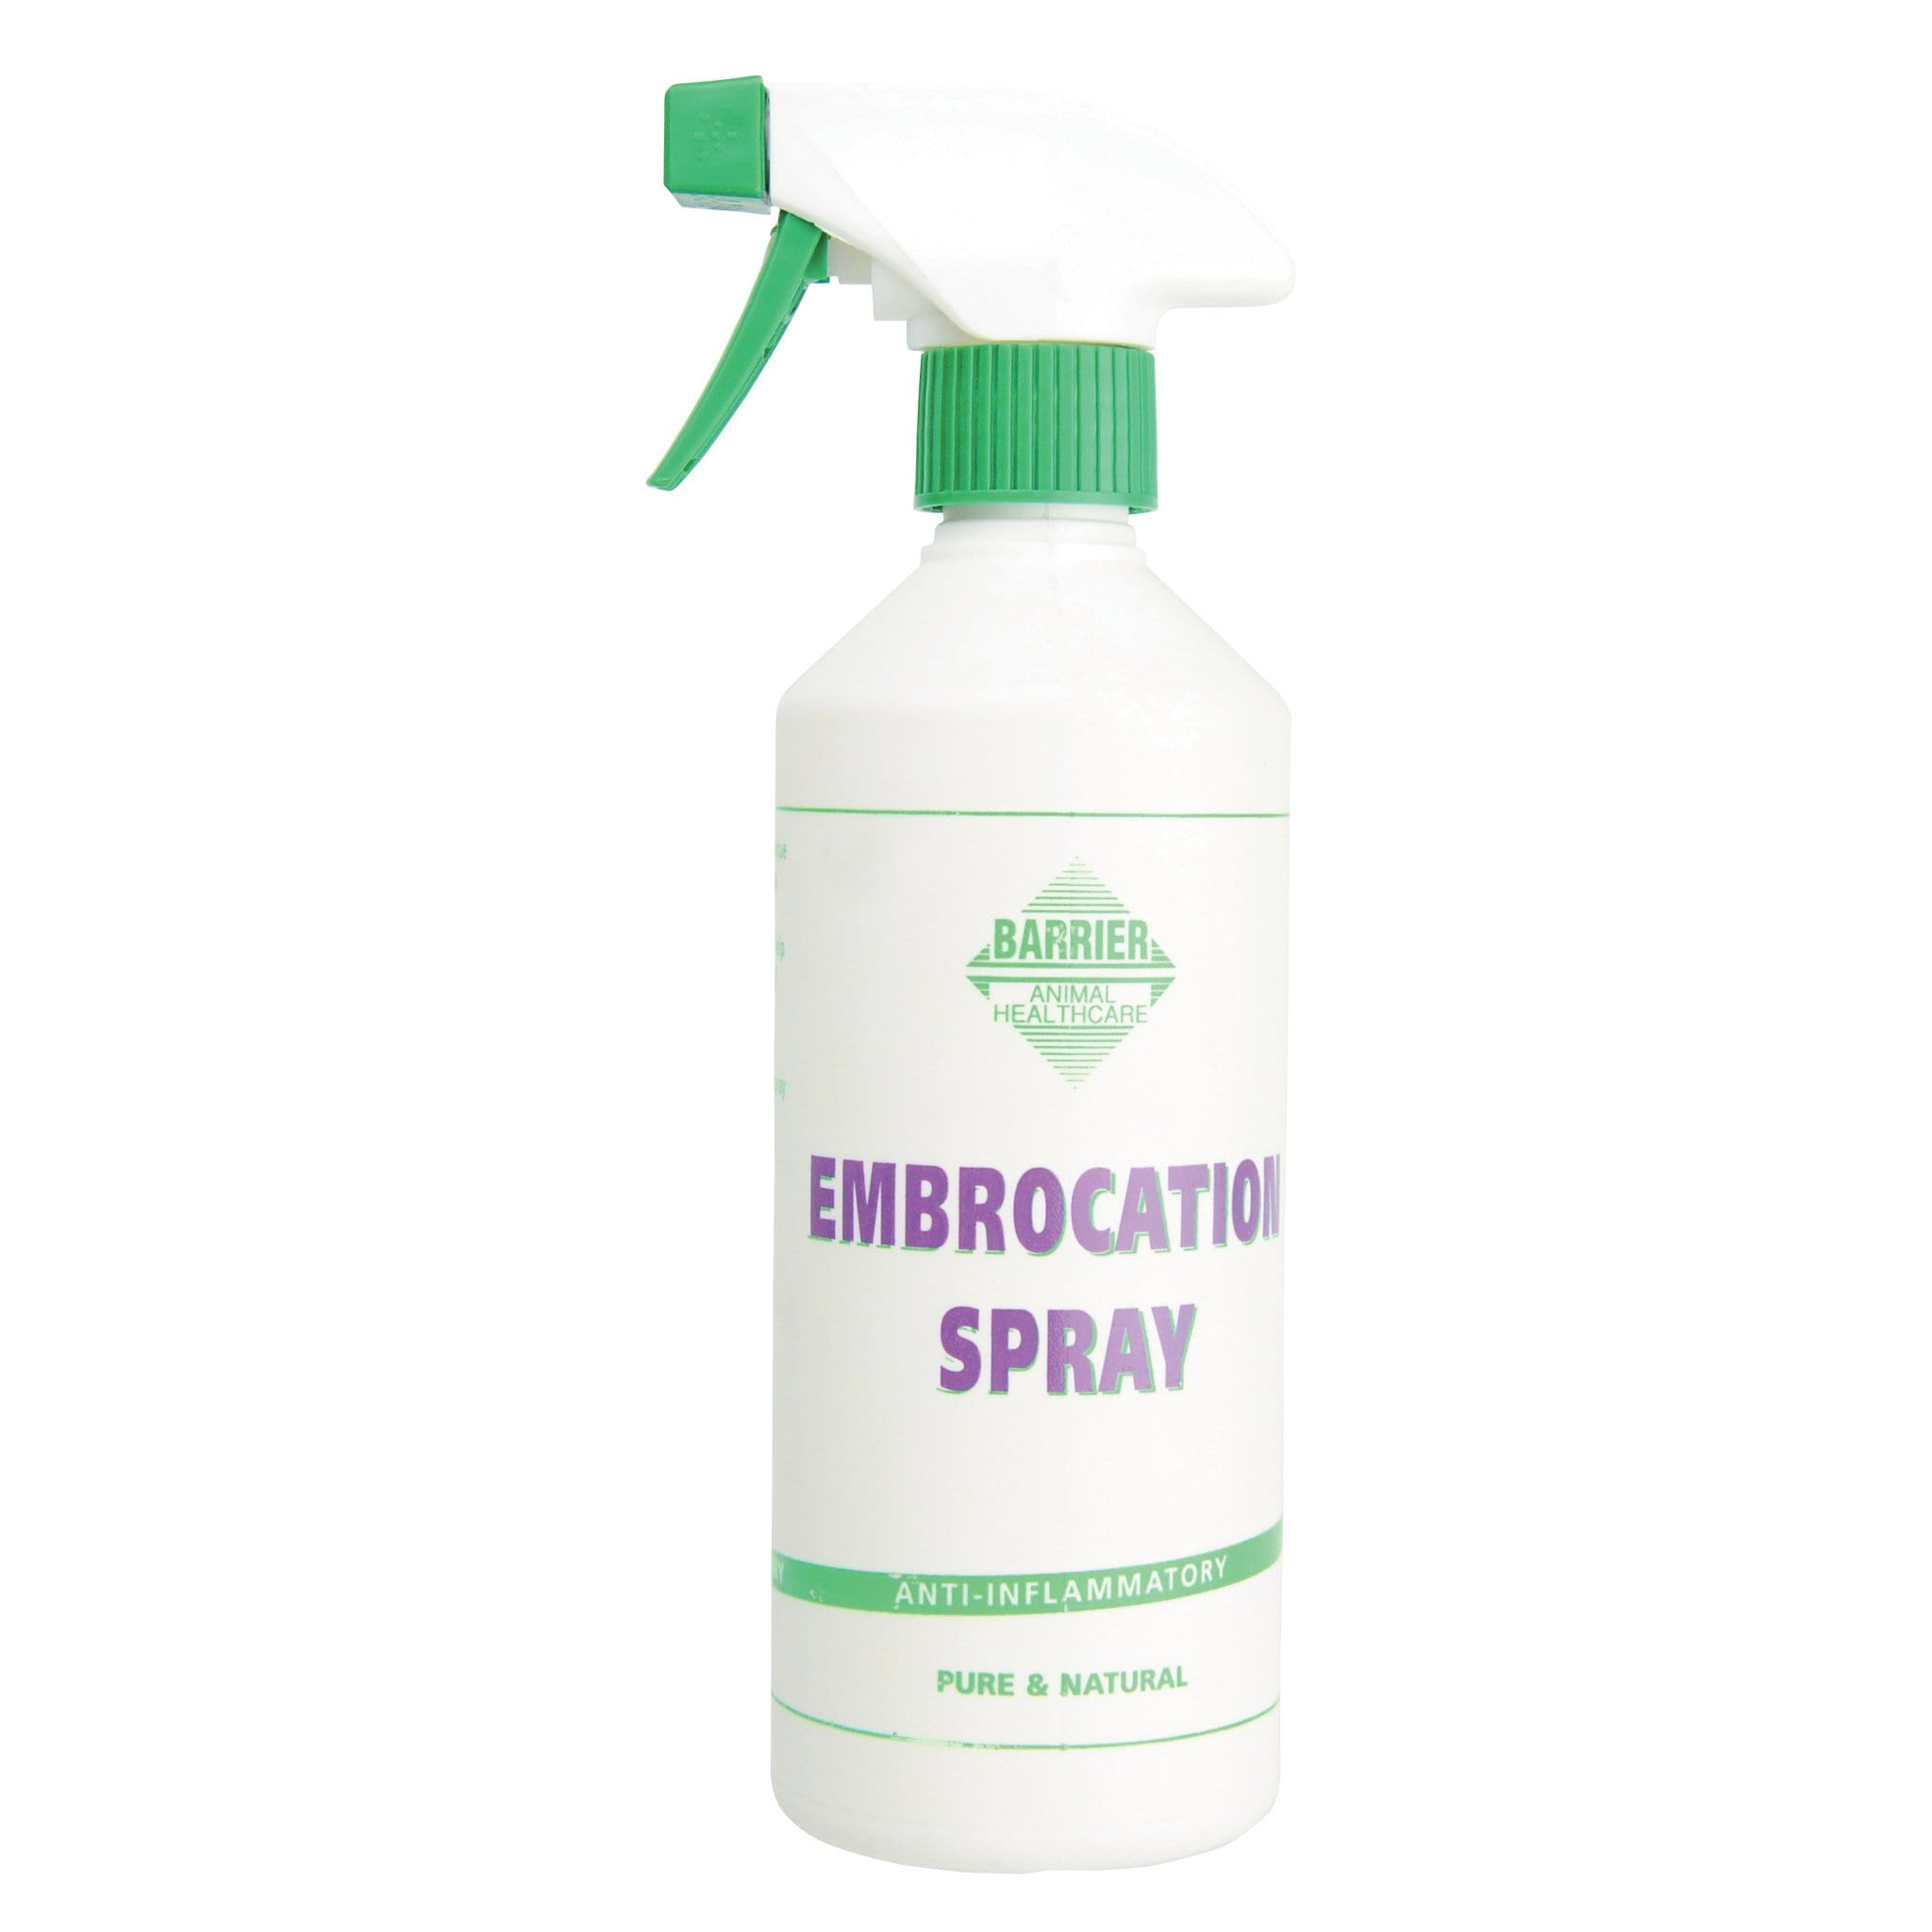 Barrier Embrocation Spray 8454